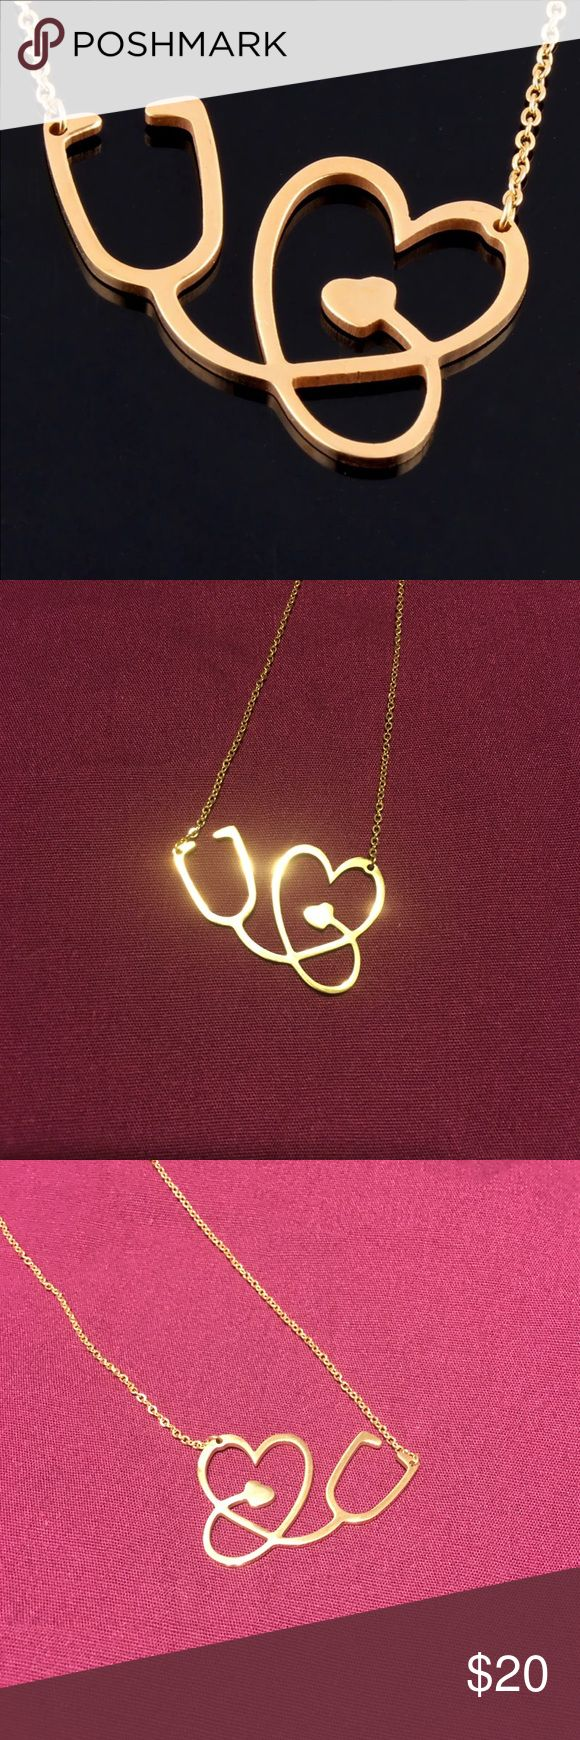 18k Gold Plated Heart Stethoscope Necklace 18k Gold Plated Heart Stethoscope Necklace. Perfect to give as a gift to a nurse, medical assistant, Doctor, or anyone else in a medical profession! They are brand new and come in rose gold, regular gold, and silver. Multiple are available. No trades. Jewelry Necklaces